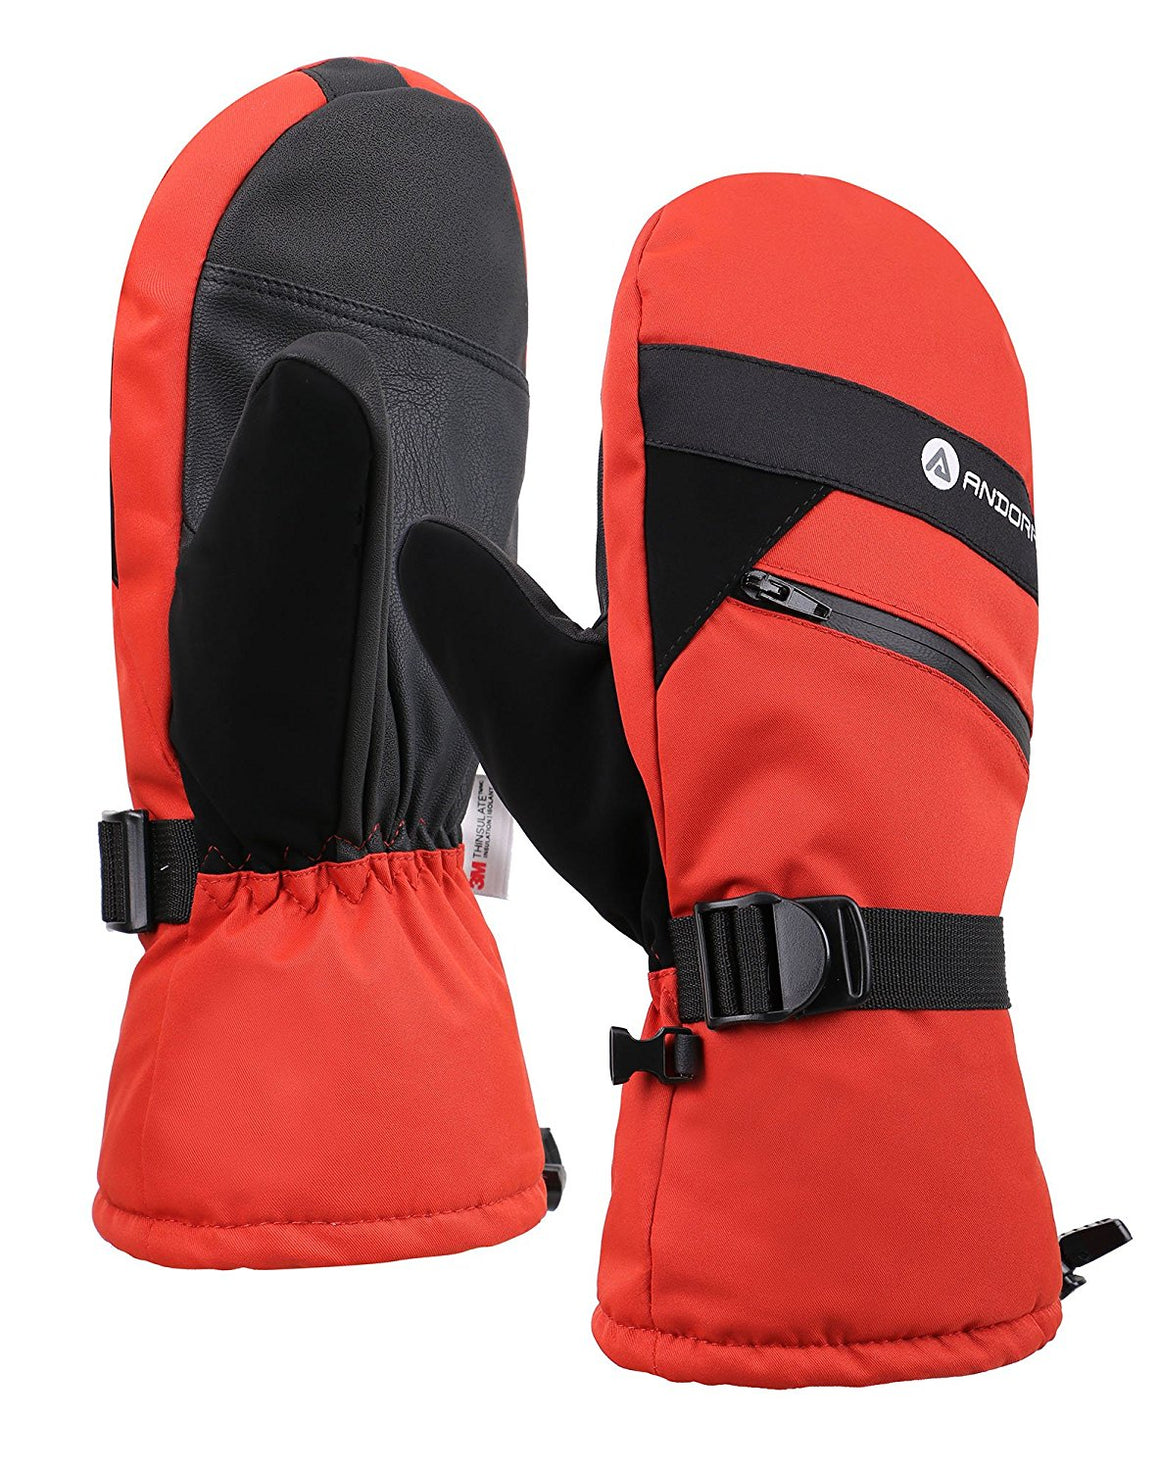 Andorra Men's Textured Touchscreen Ski Mittens w/ Zipper Pocket - Orange